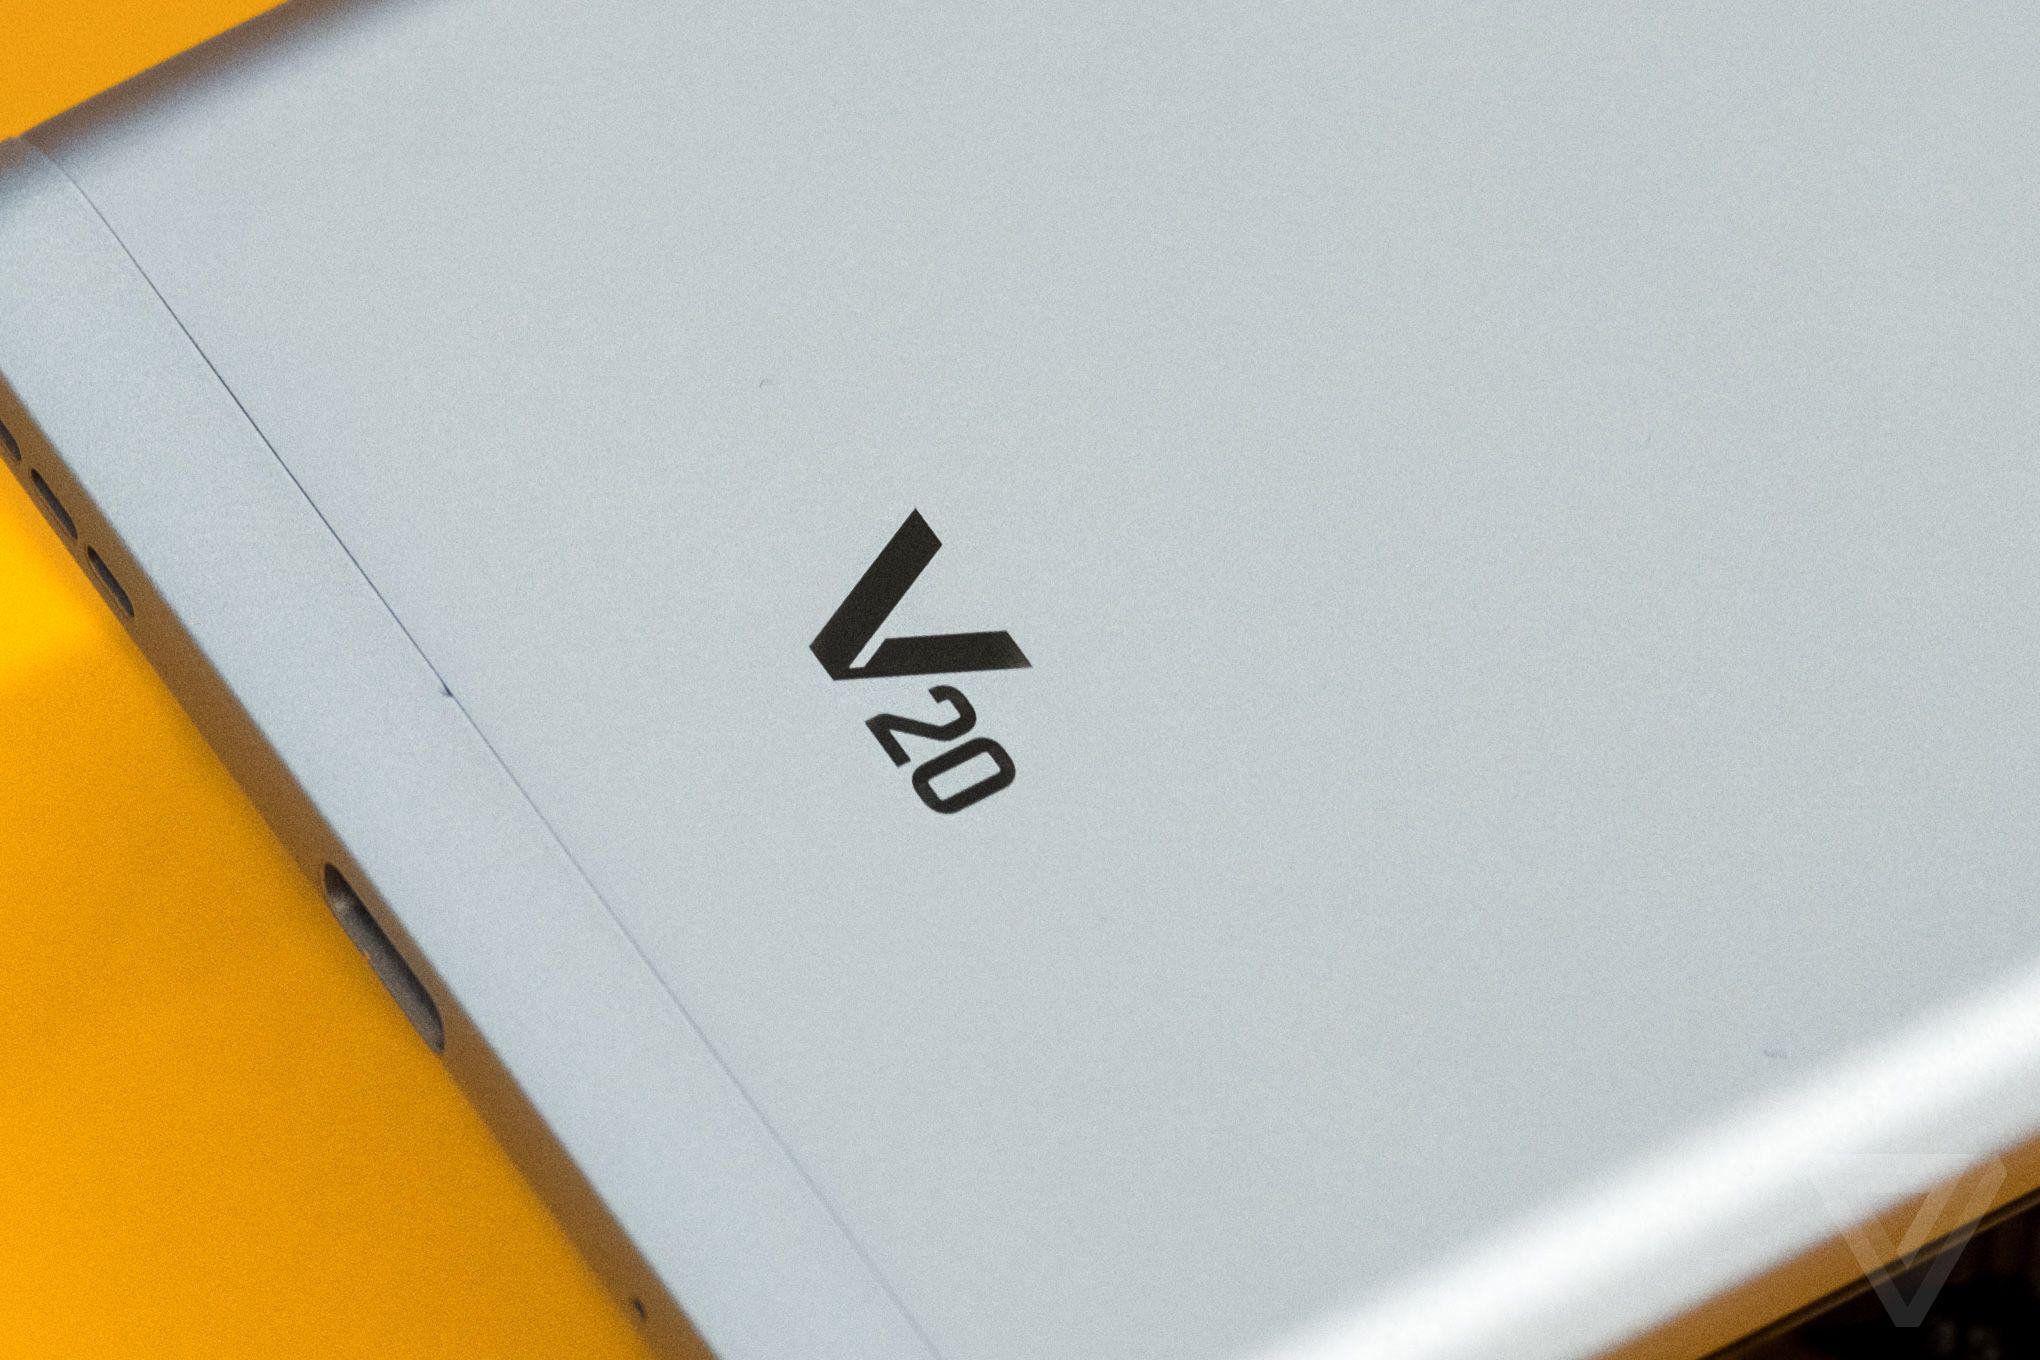 LG V20 review: lots of features, less refinement | The Verge